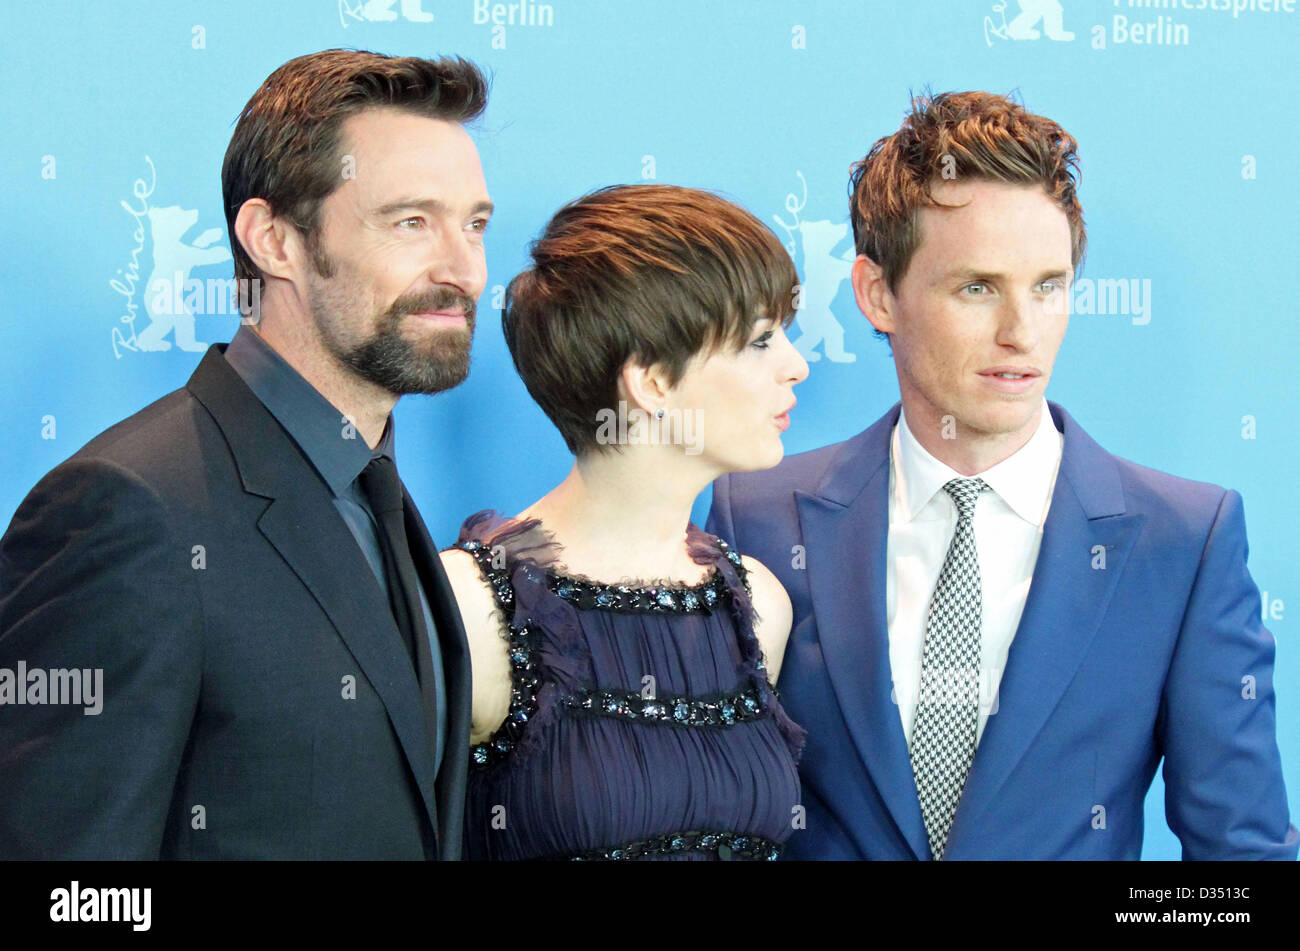 Im im images of anne hathaway - Hugh Jackman Anne Hathaway Eddie Redmayne Photocall Les Miserables Im Hyatt Hotel In Berlin Am 09 02 2013 Foto Succomedia Steffi Karrenbrock